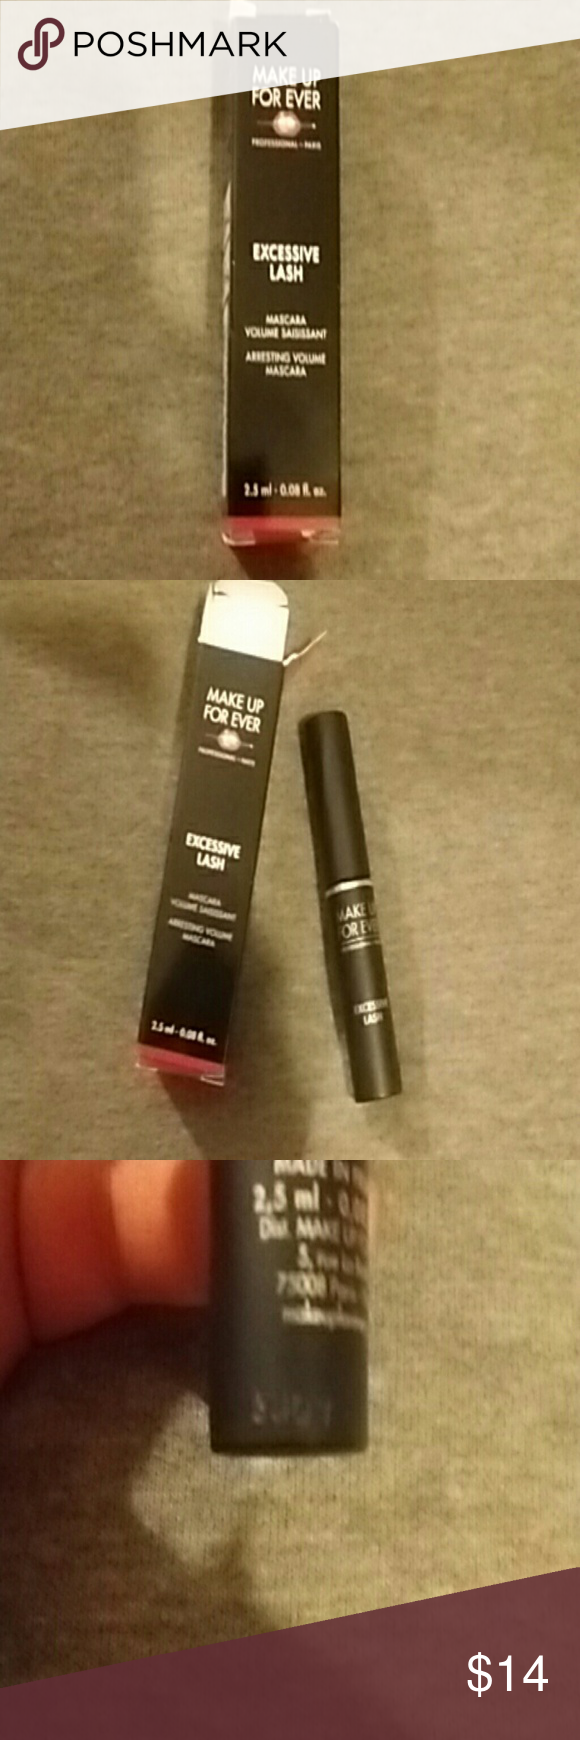 Mascara Mini sized. Makeup Forever brand. Excessive Lash